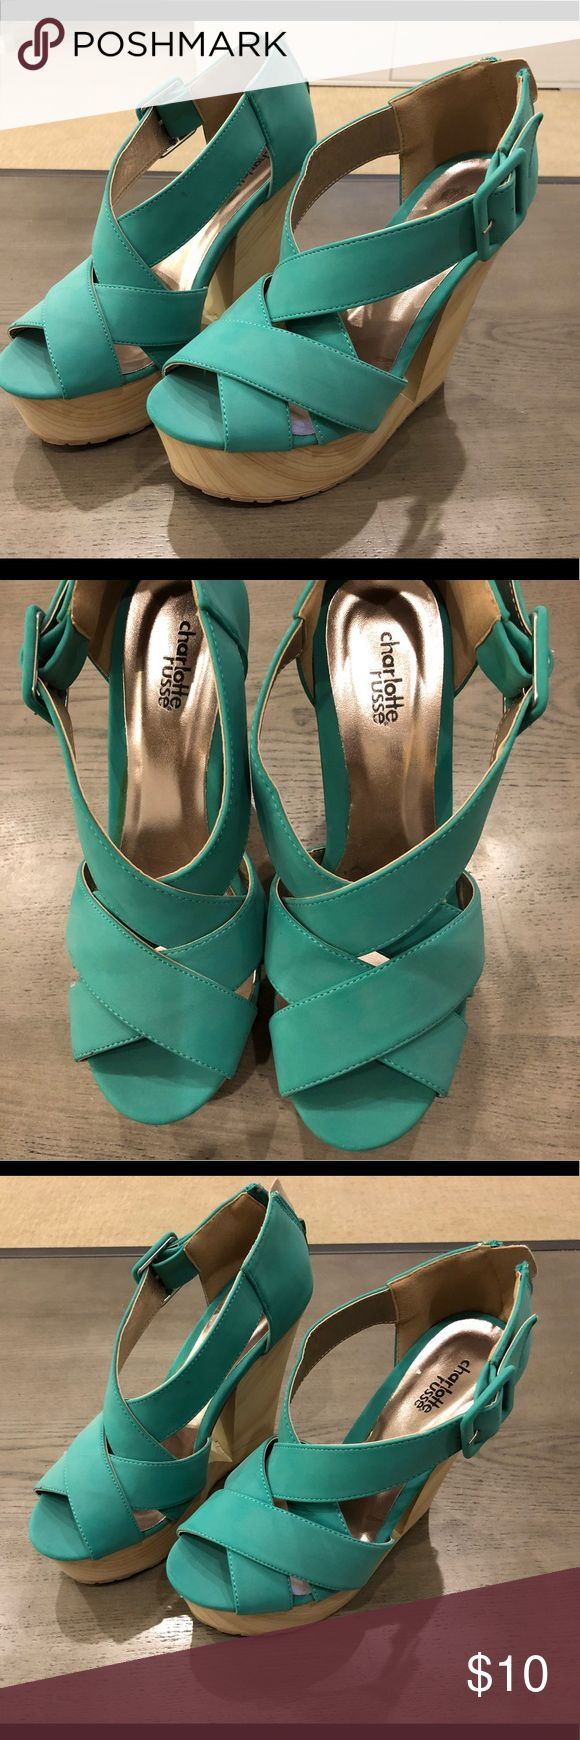 Teal wedges Preowned like new Size 8, Charlotte Russe teal wedges in excellent condition. Charlotte Russe Shoes Wedges